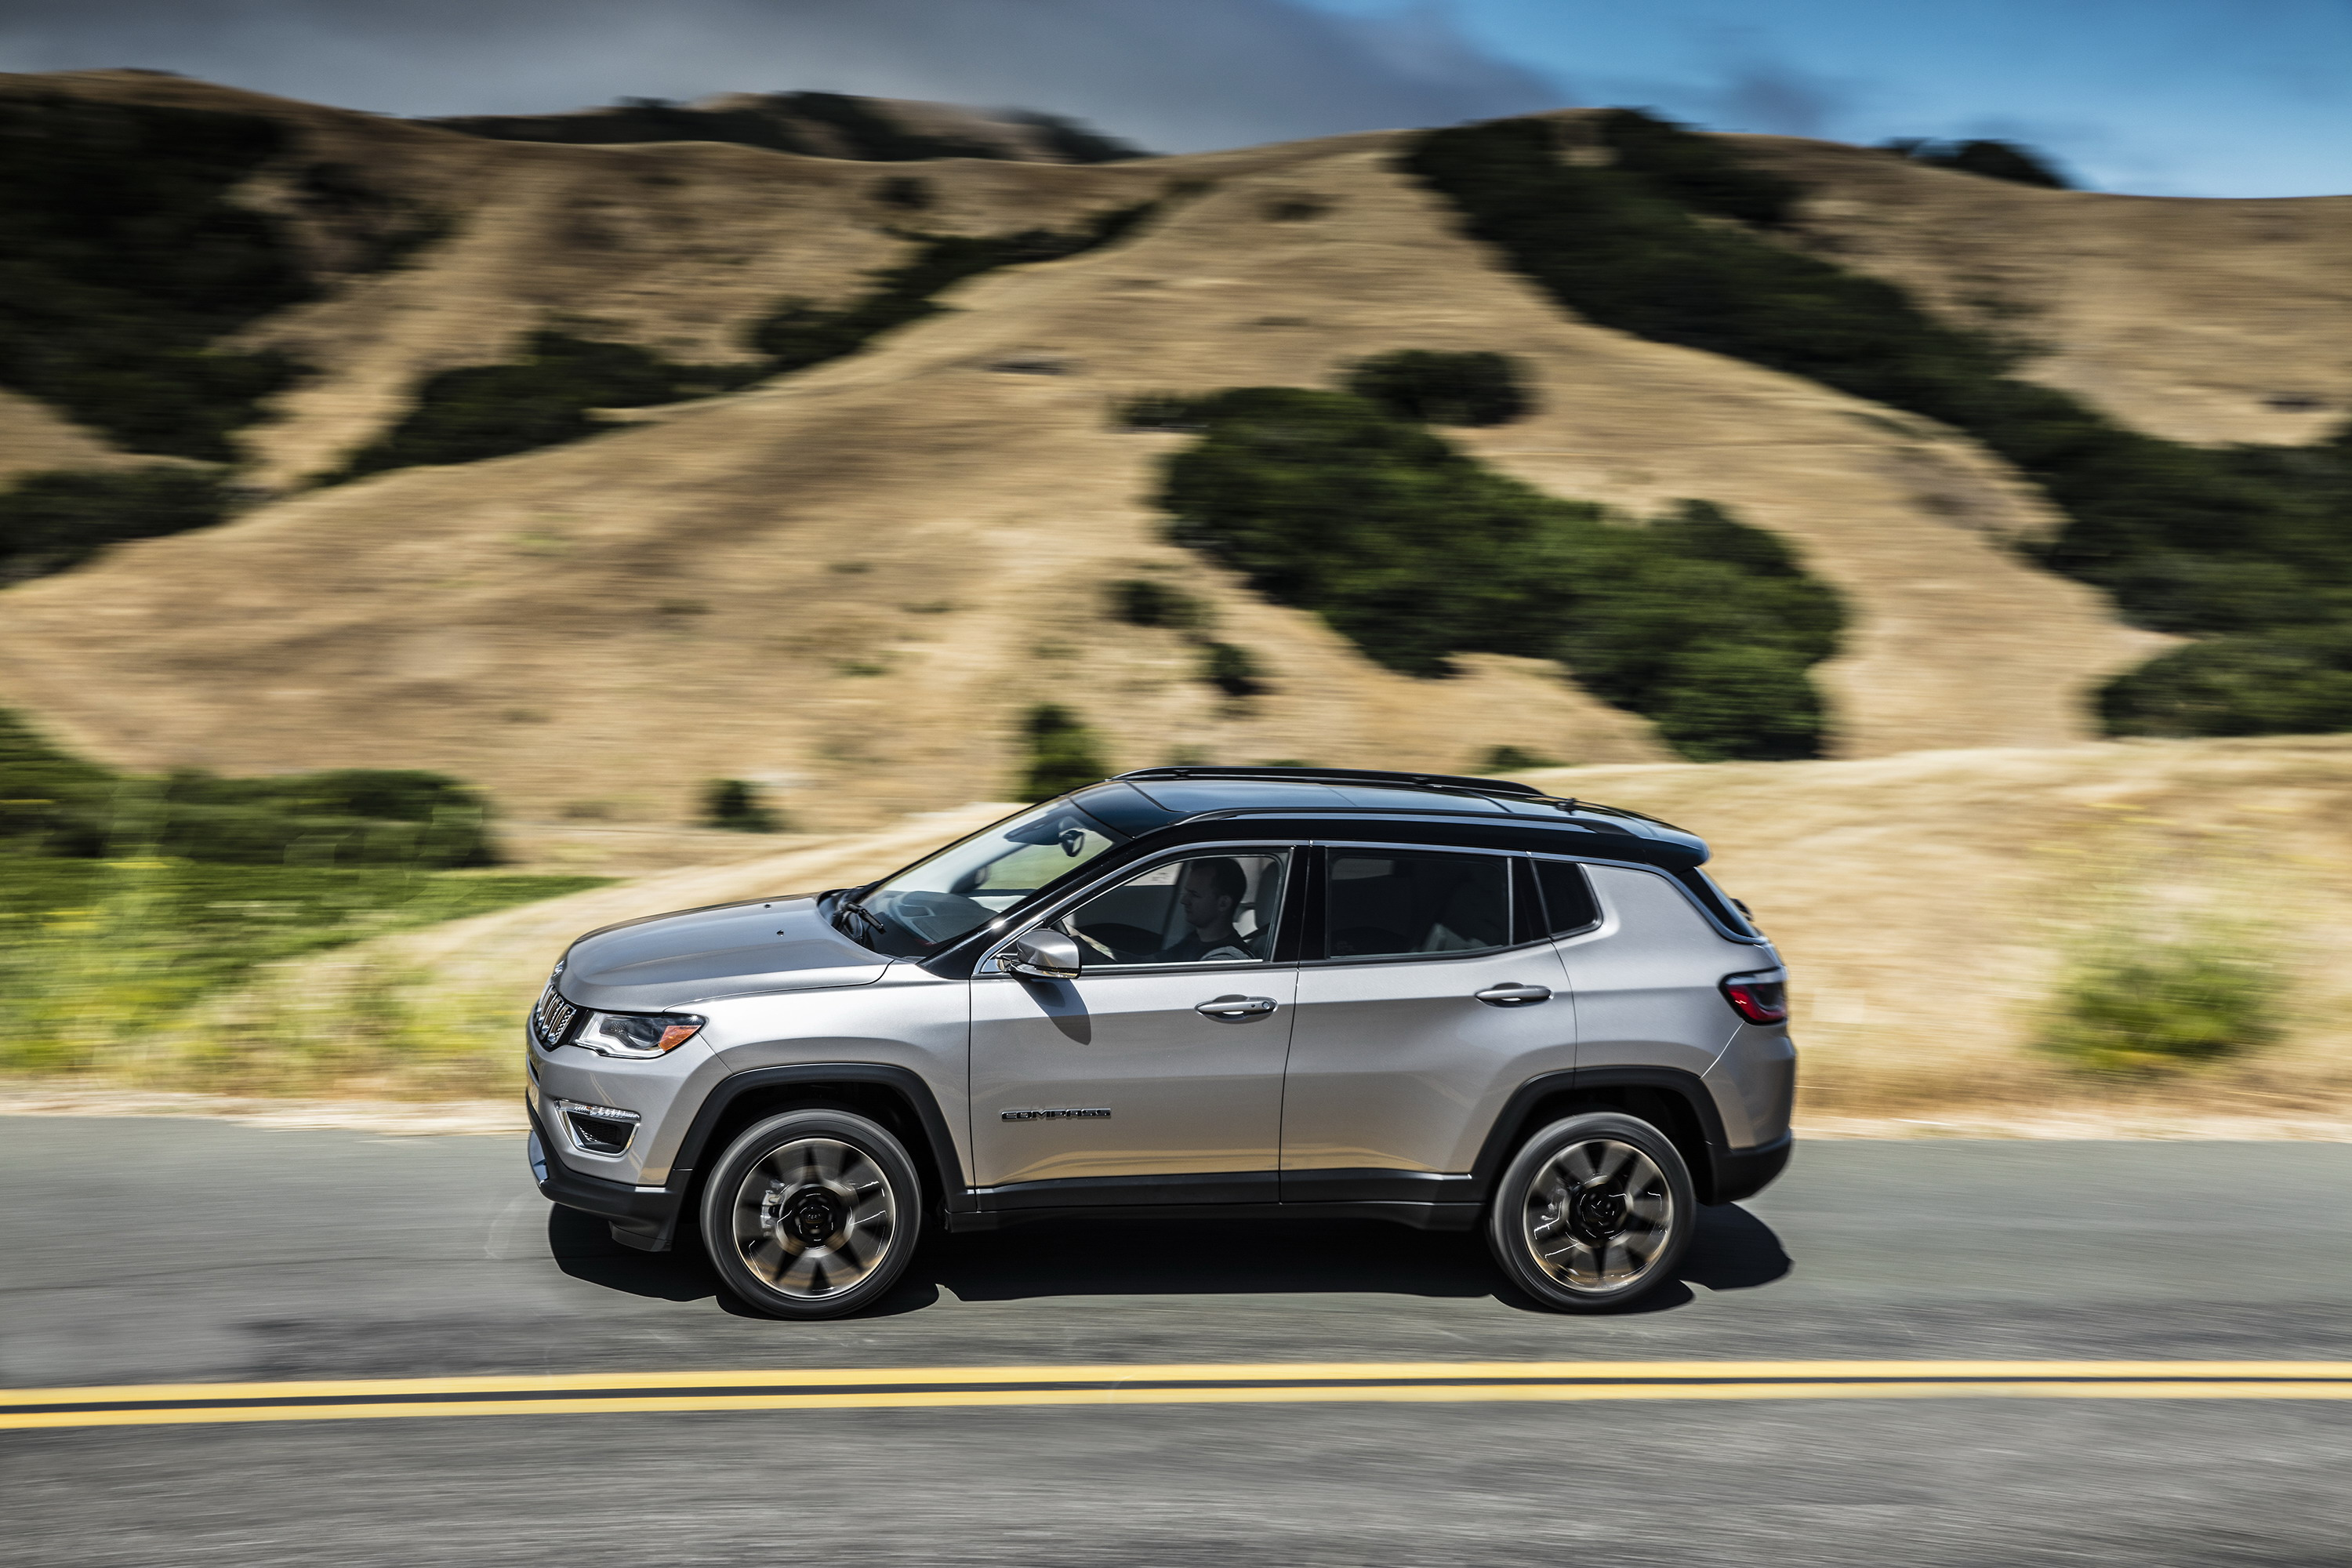 2017 jeep compass review - top speed